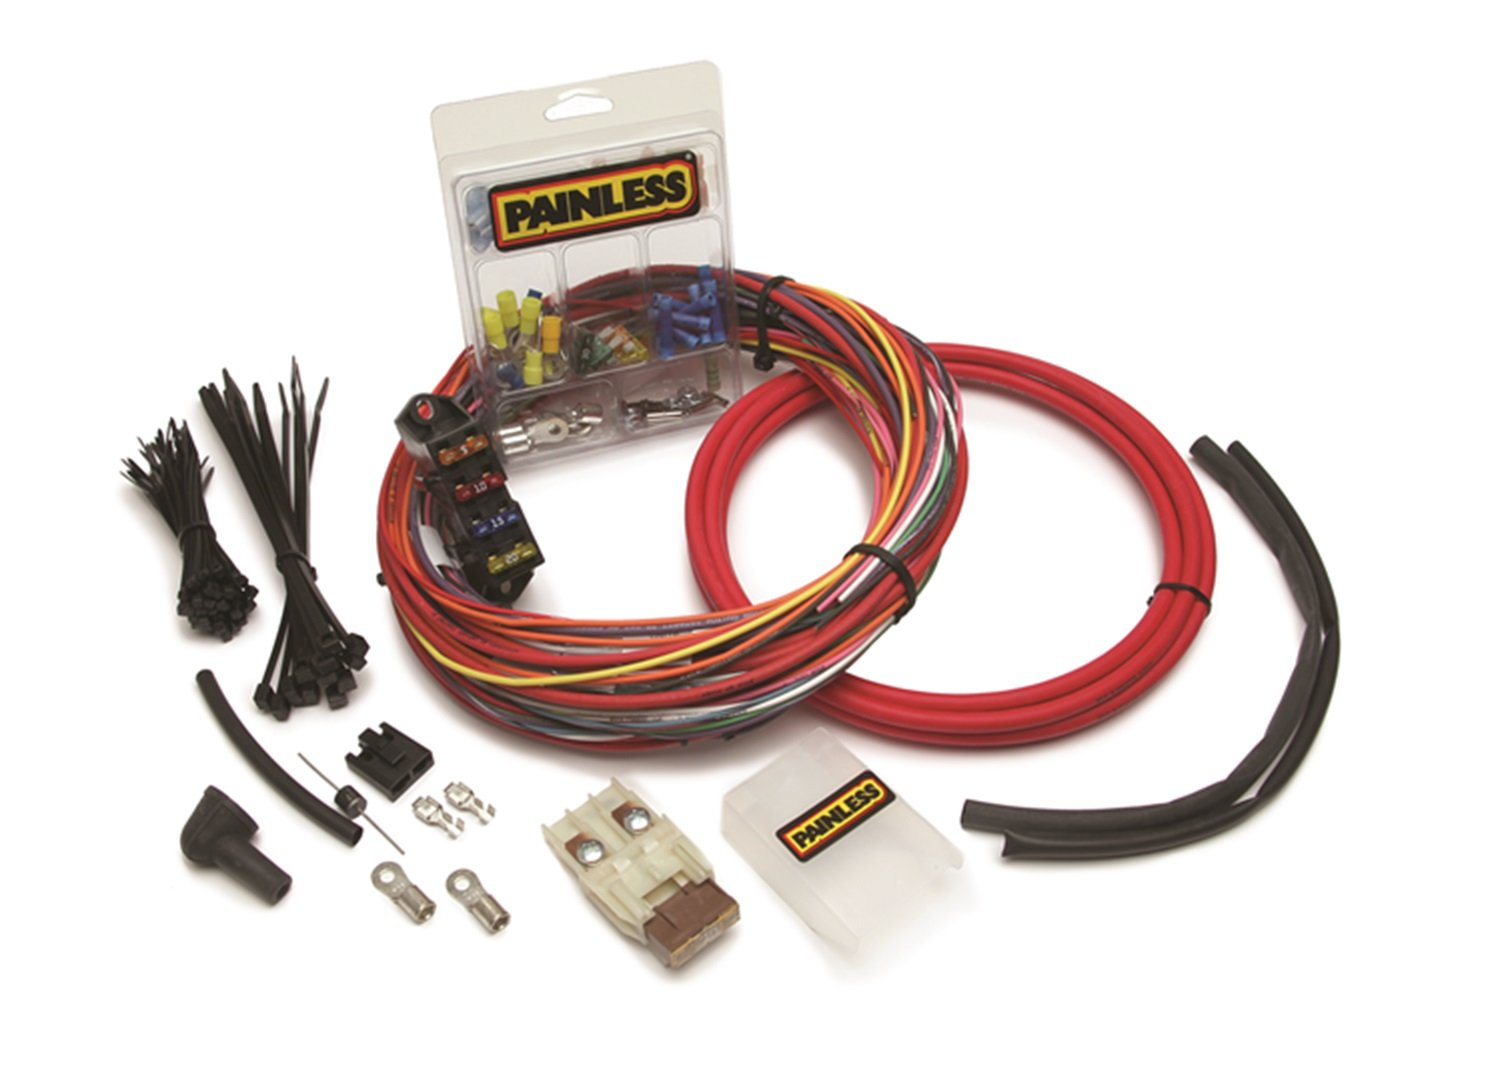 Painless 30830 Engine Harness Durable Modeling Lt1 Wiring